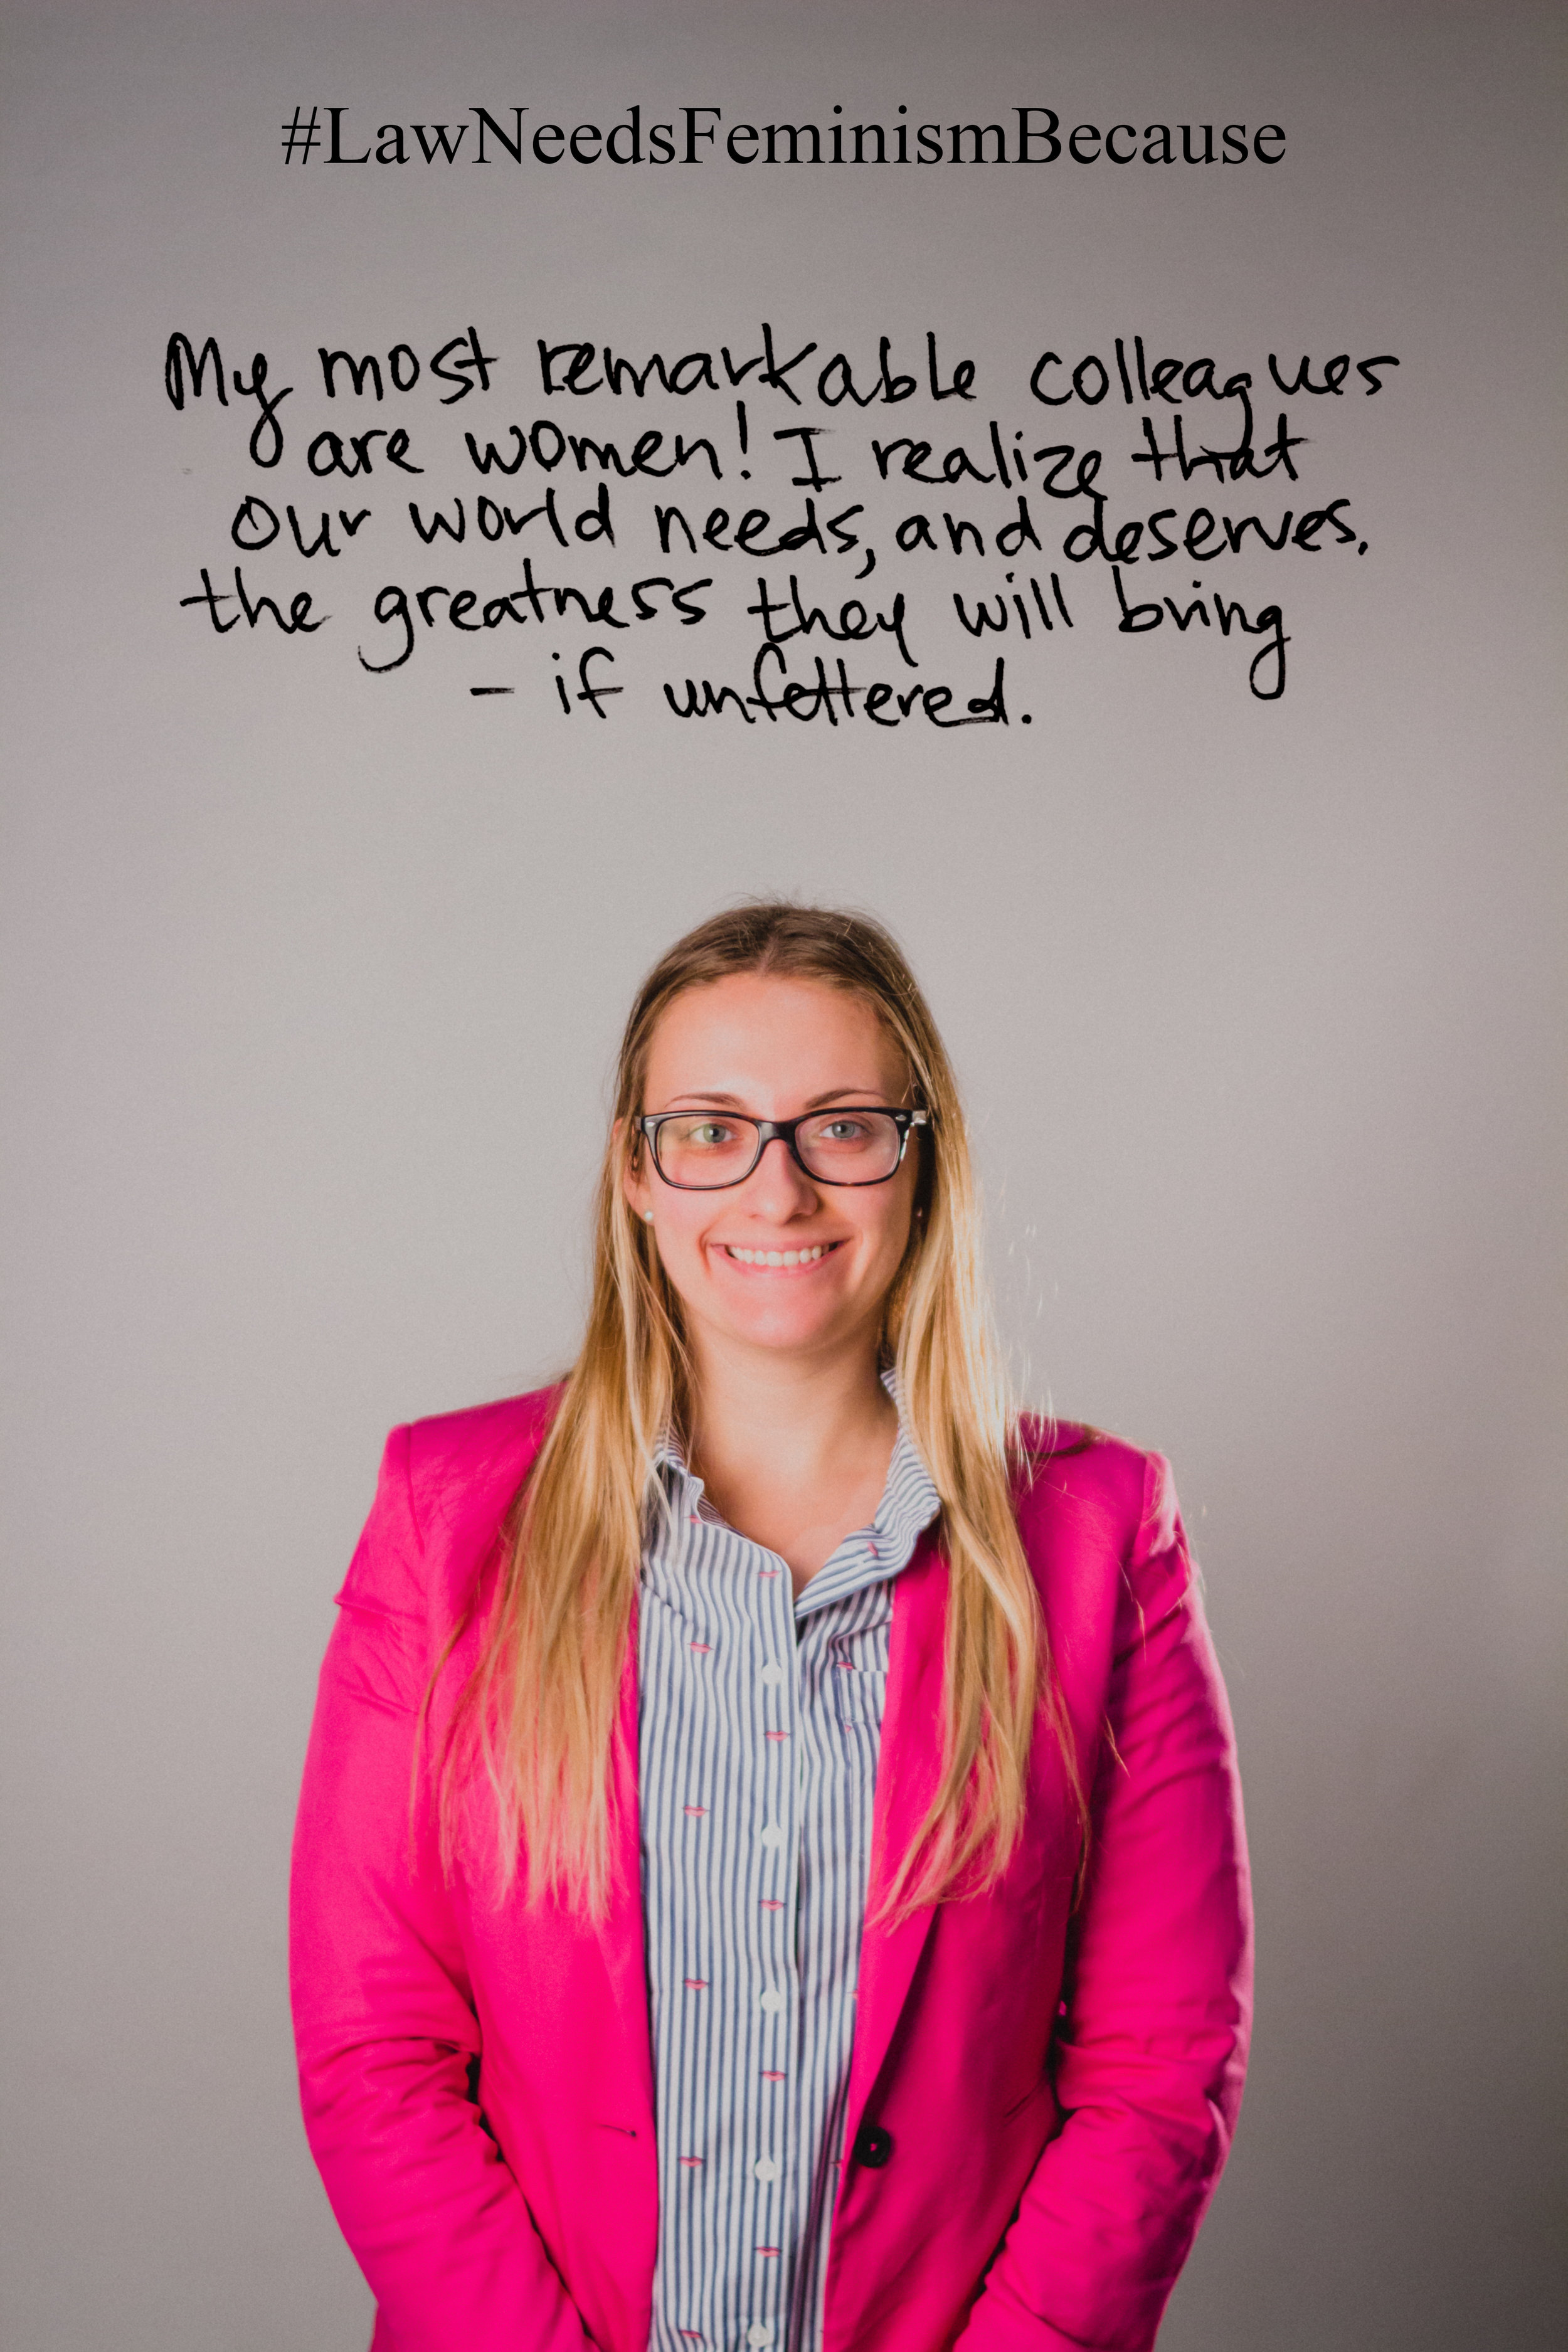 """Law Needs Feminism Because """" My most remarkable colleagues are women! I realize that our world needs, and deserves, the greatness they will bring — if unfettered."""""""